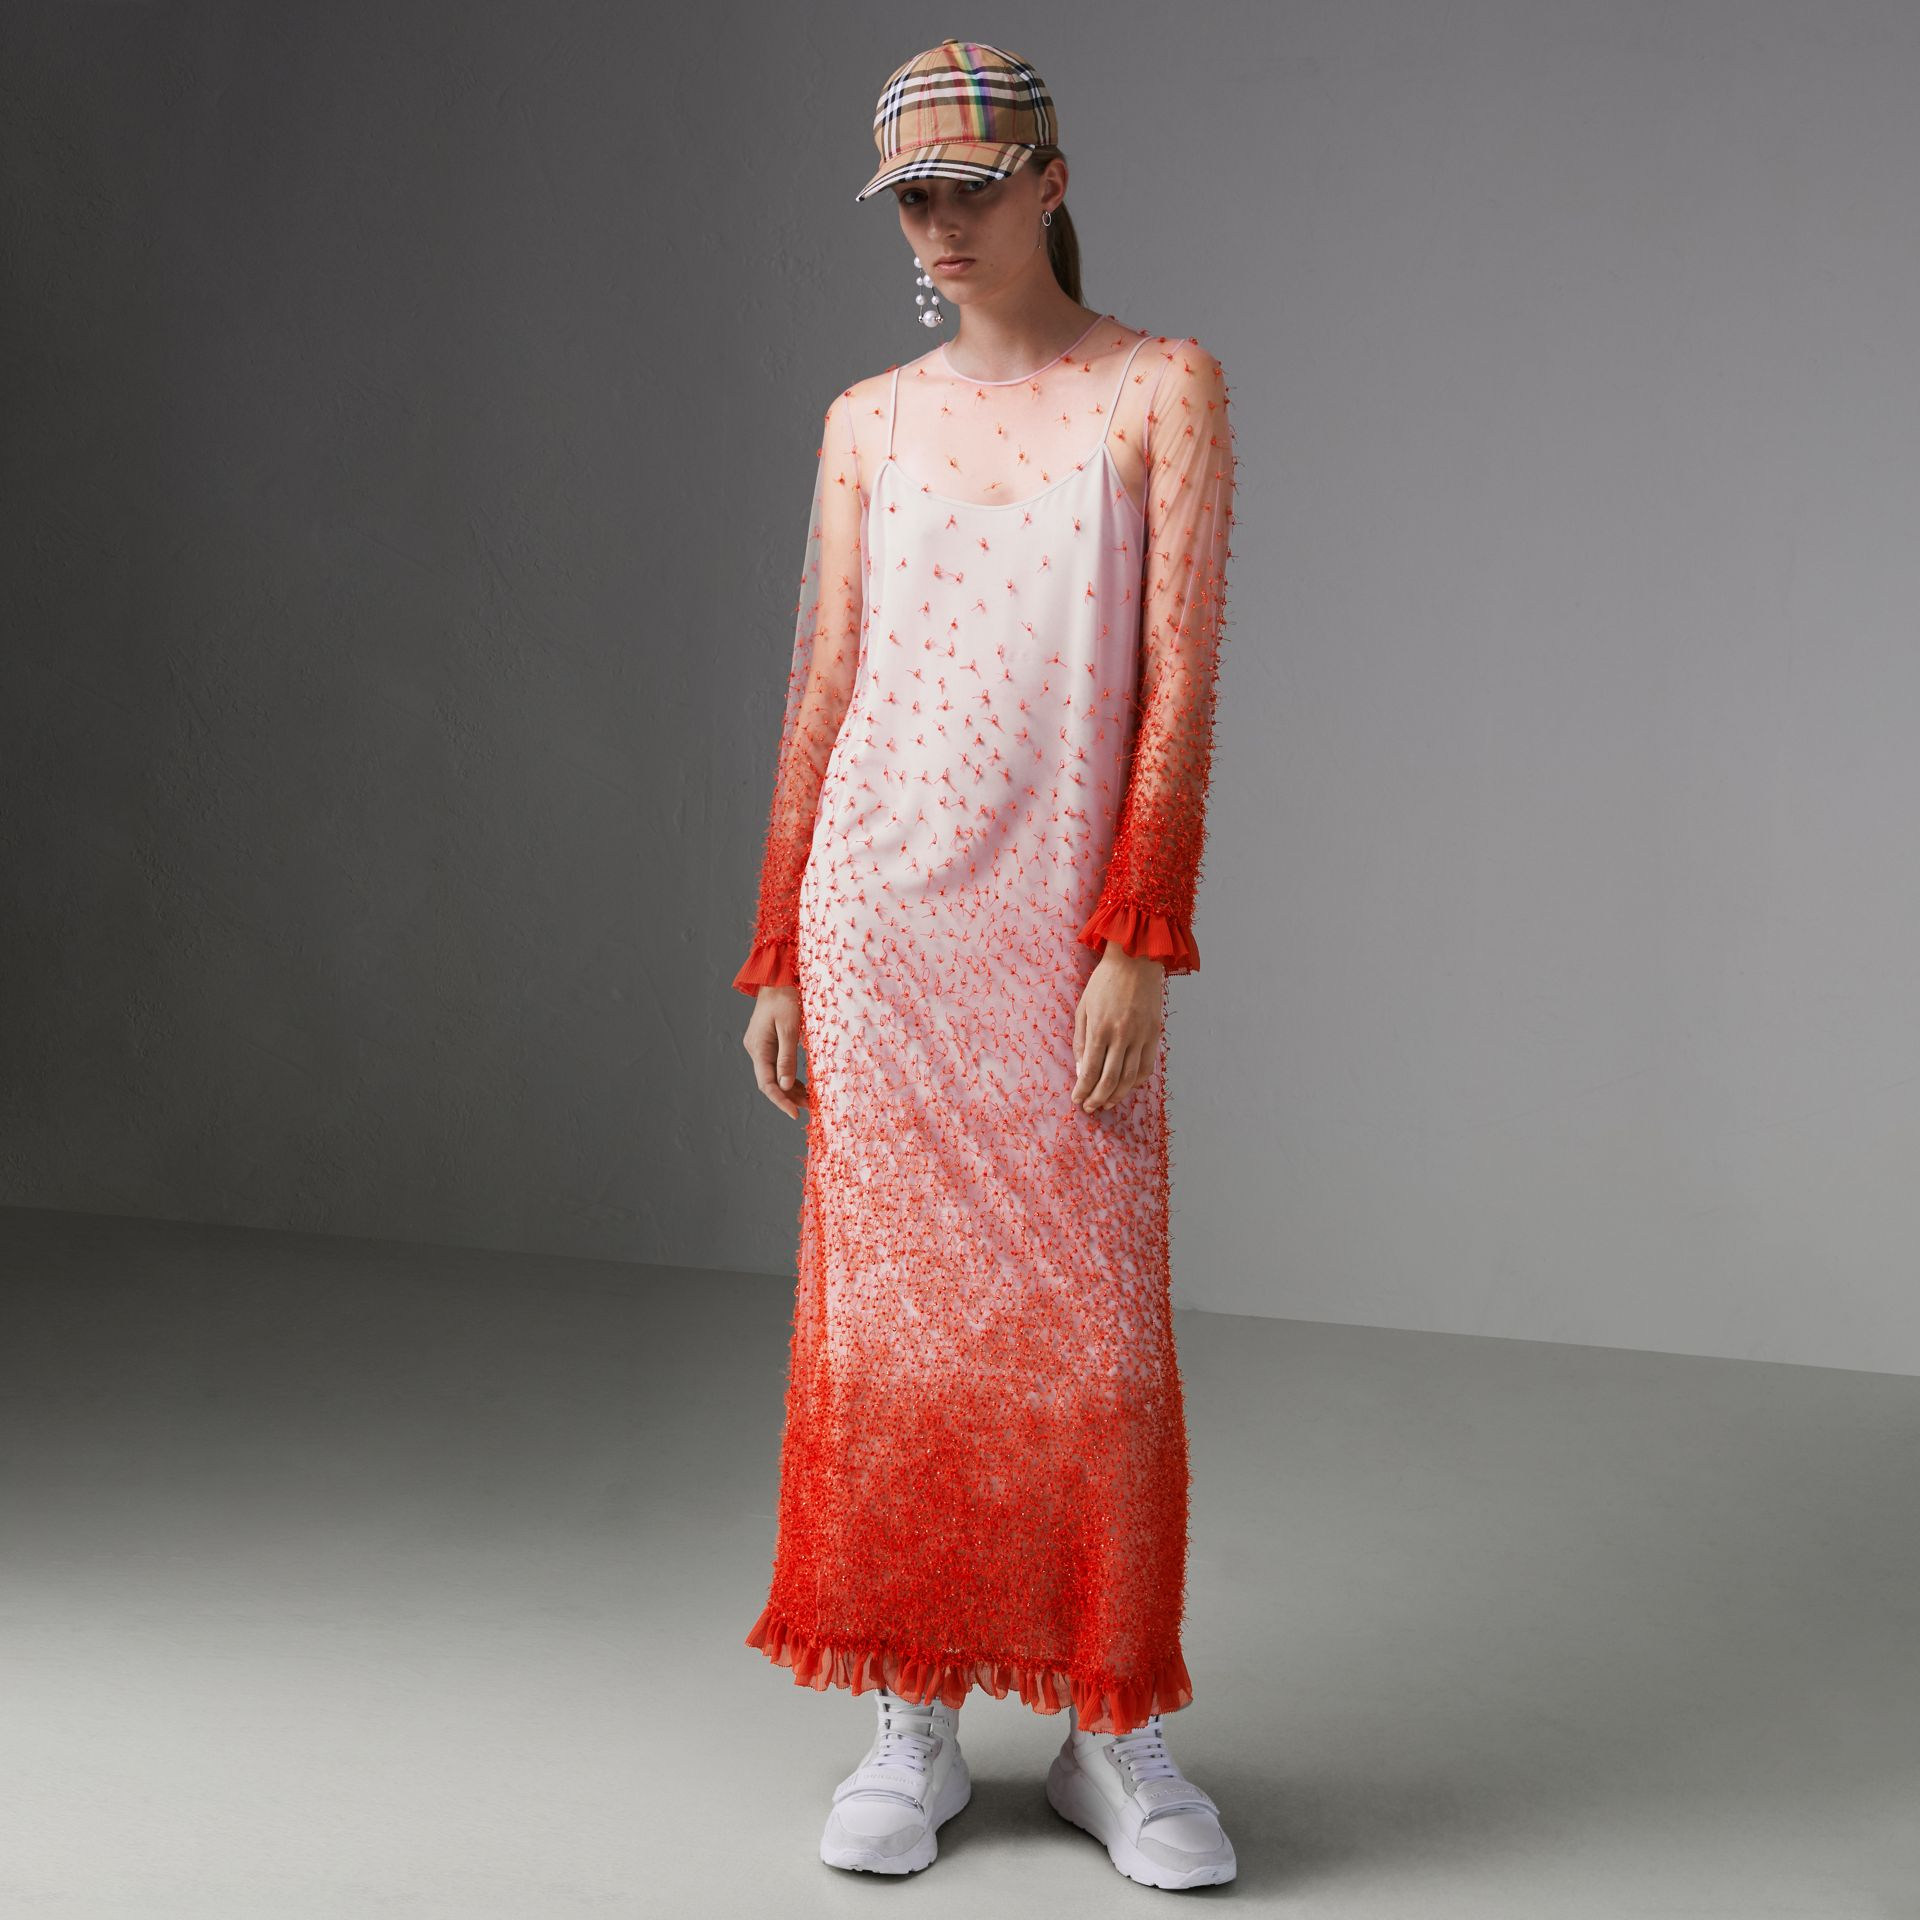 Dégradé Hand-beaded Crepon Dress in Coral - Women | Burberry Singapore - gallery image 5